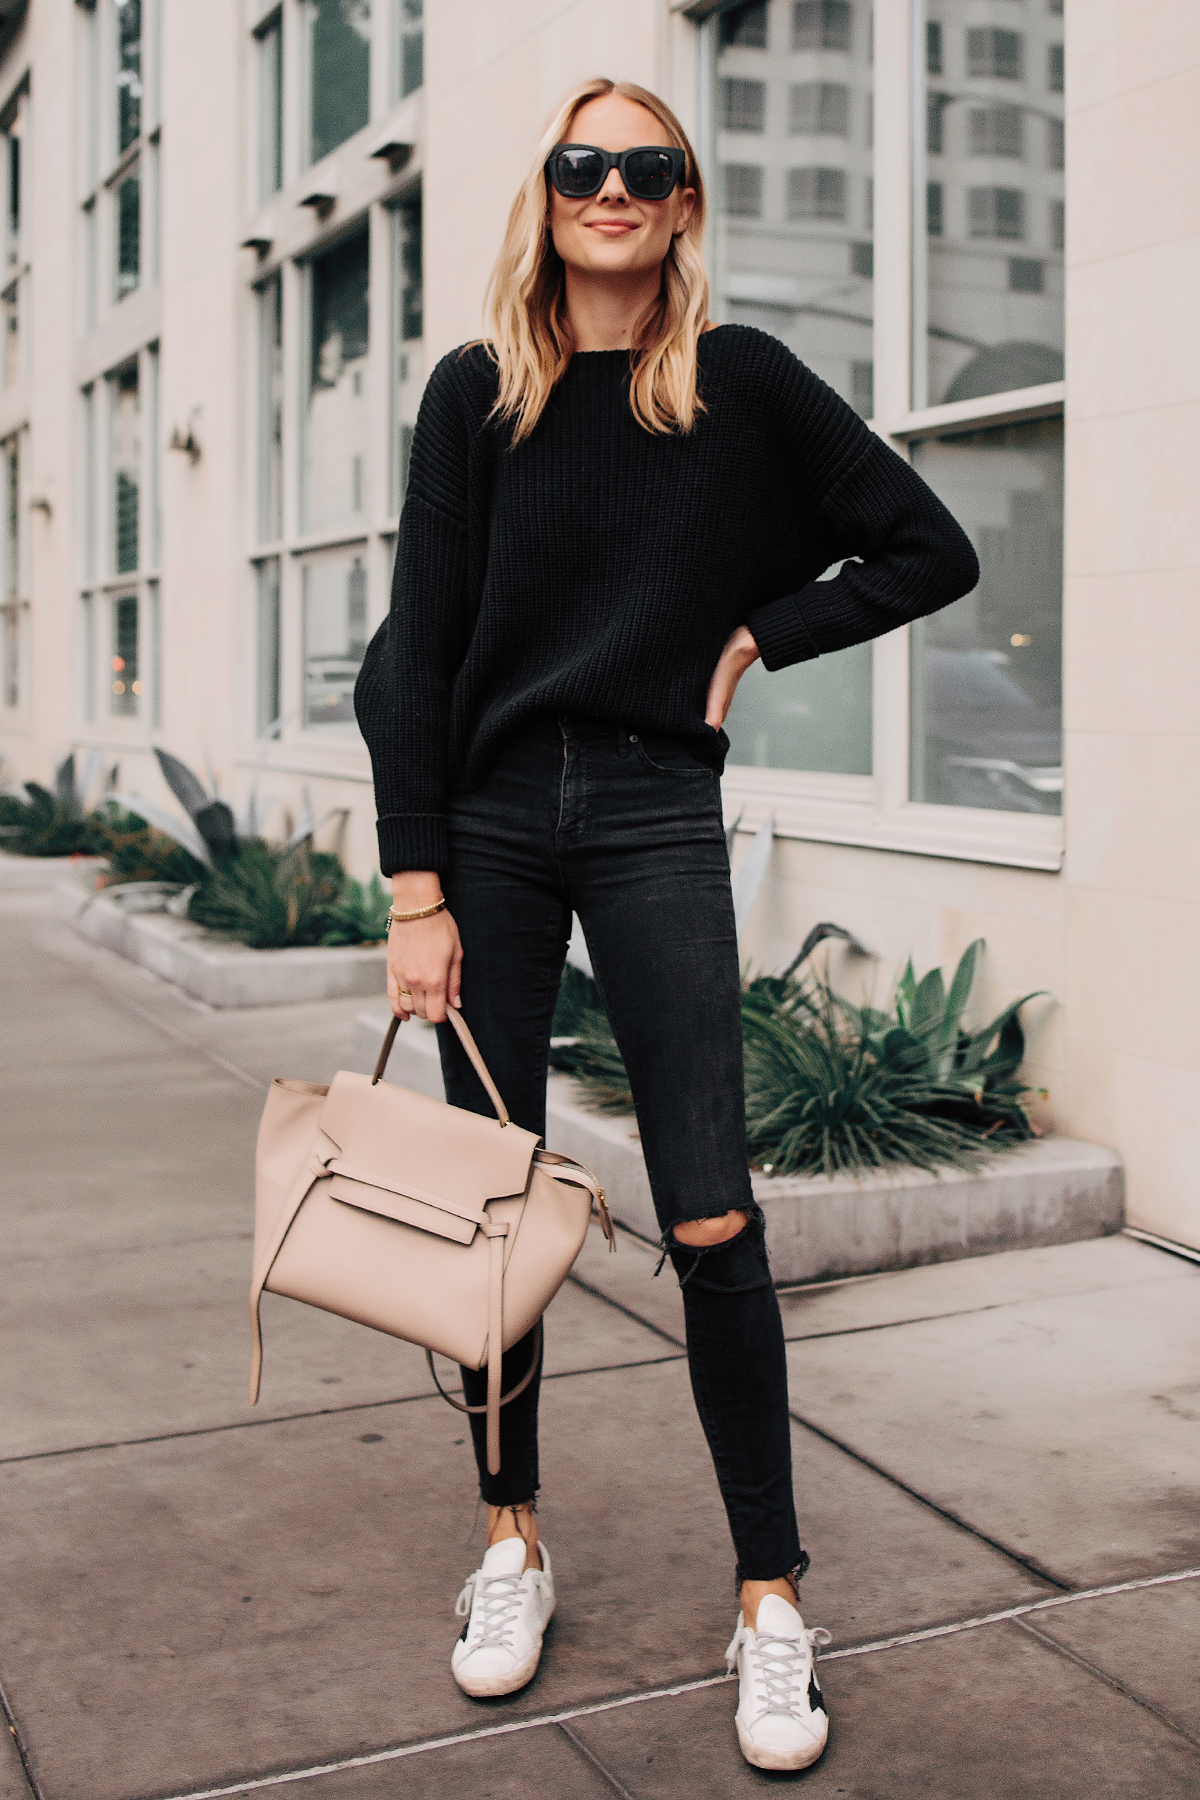 Blonde Woman Wearing Black Oversized Sweater Madewell Black Ripped Skinny Jeans Golden Goose Sneakers Celine Mini Belt Bag Fashion Jackson San Diego Fashion Blogger Street Style